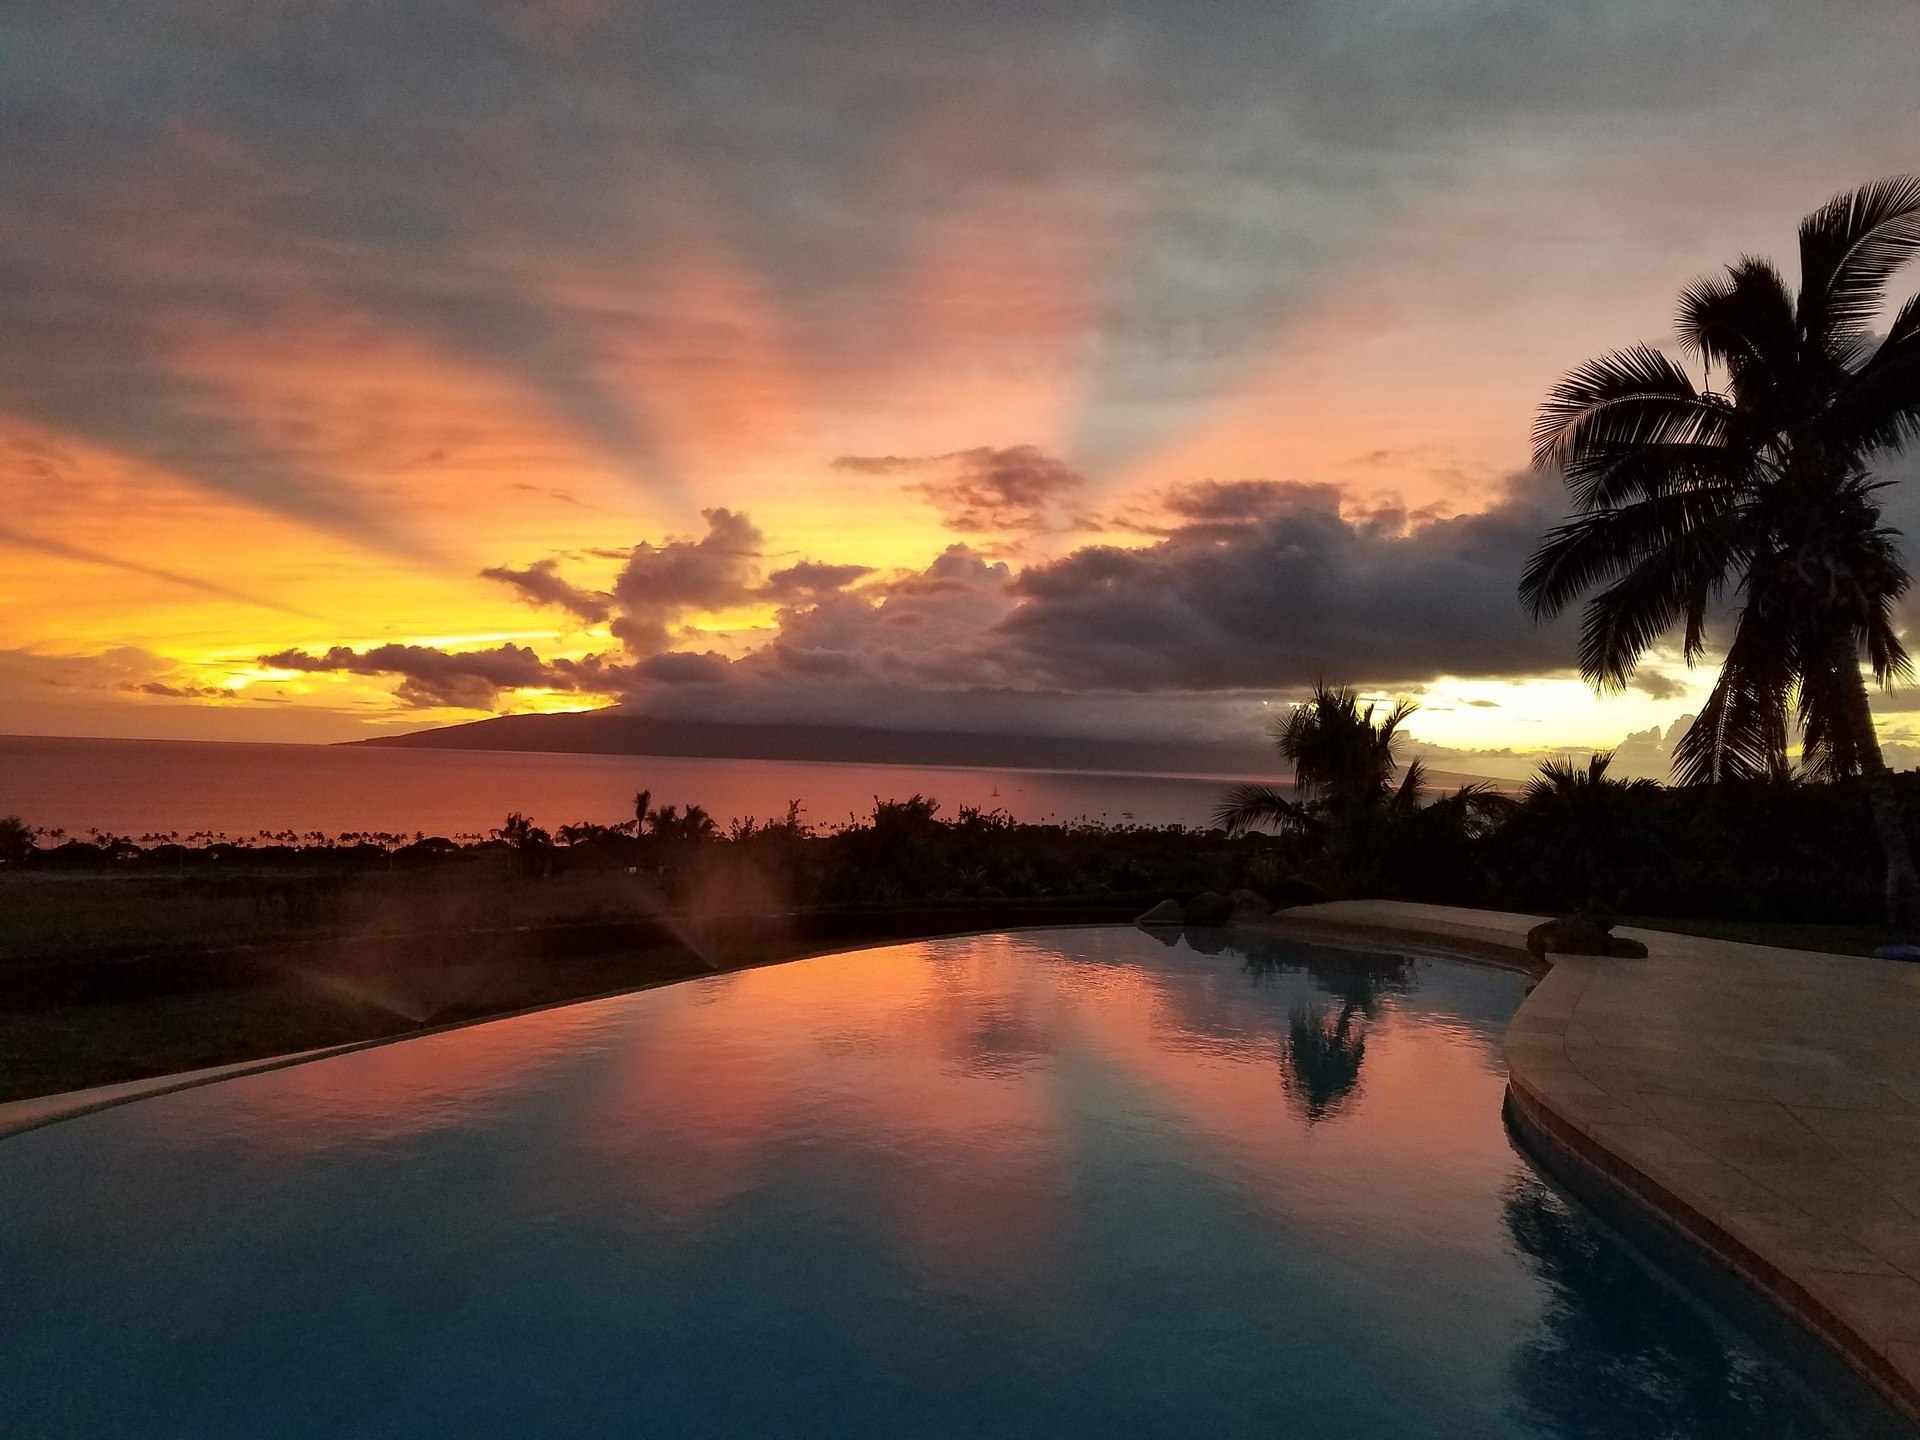 Sunset at Lahaina - Where to Stay in Maui for Your First Time